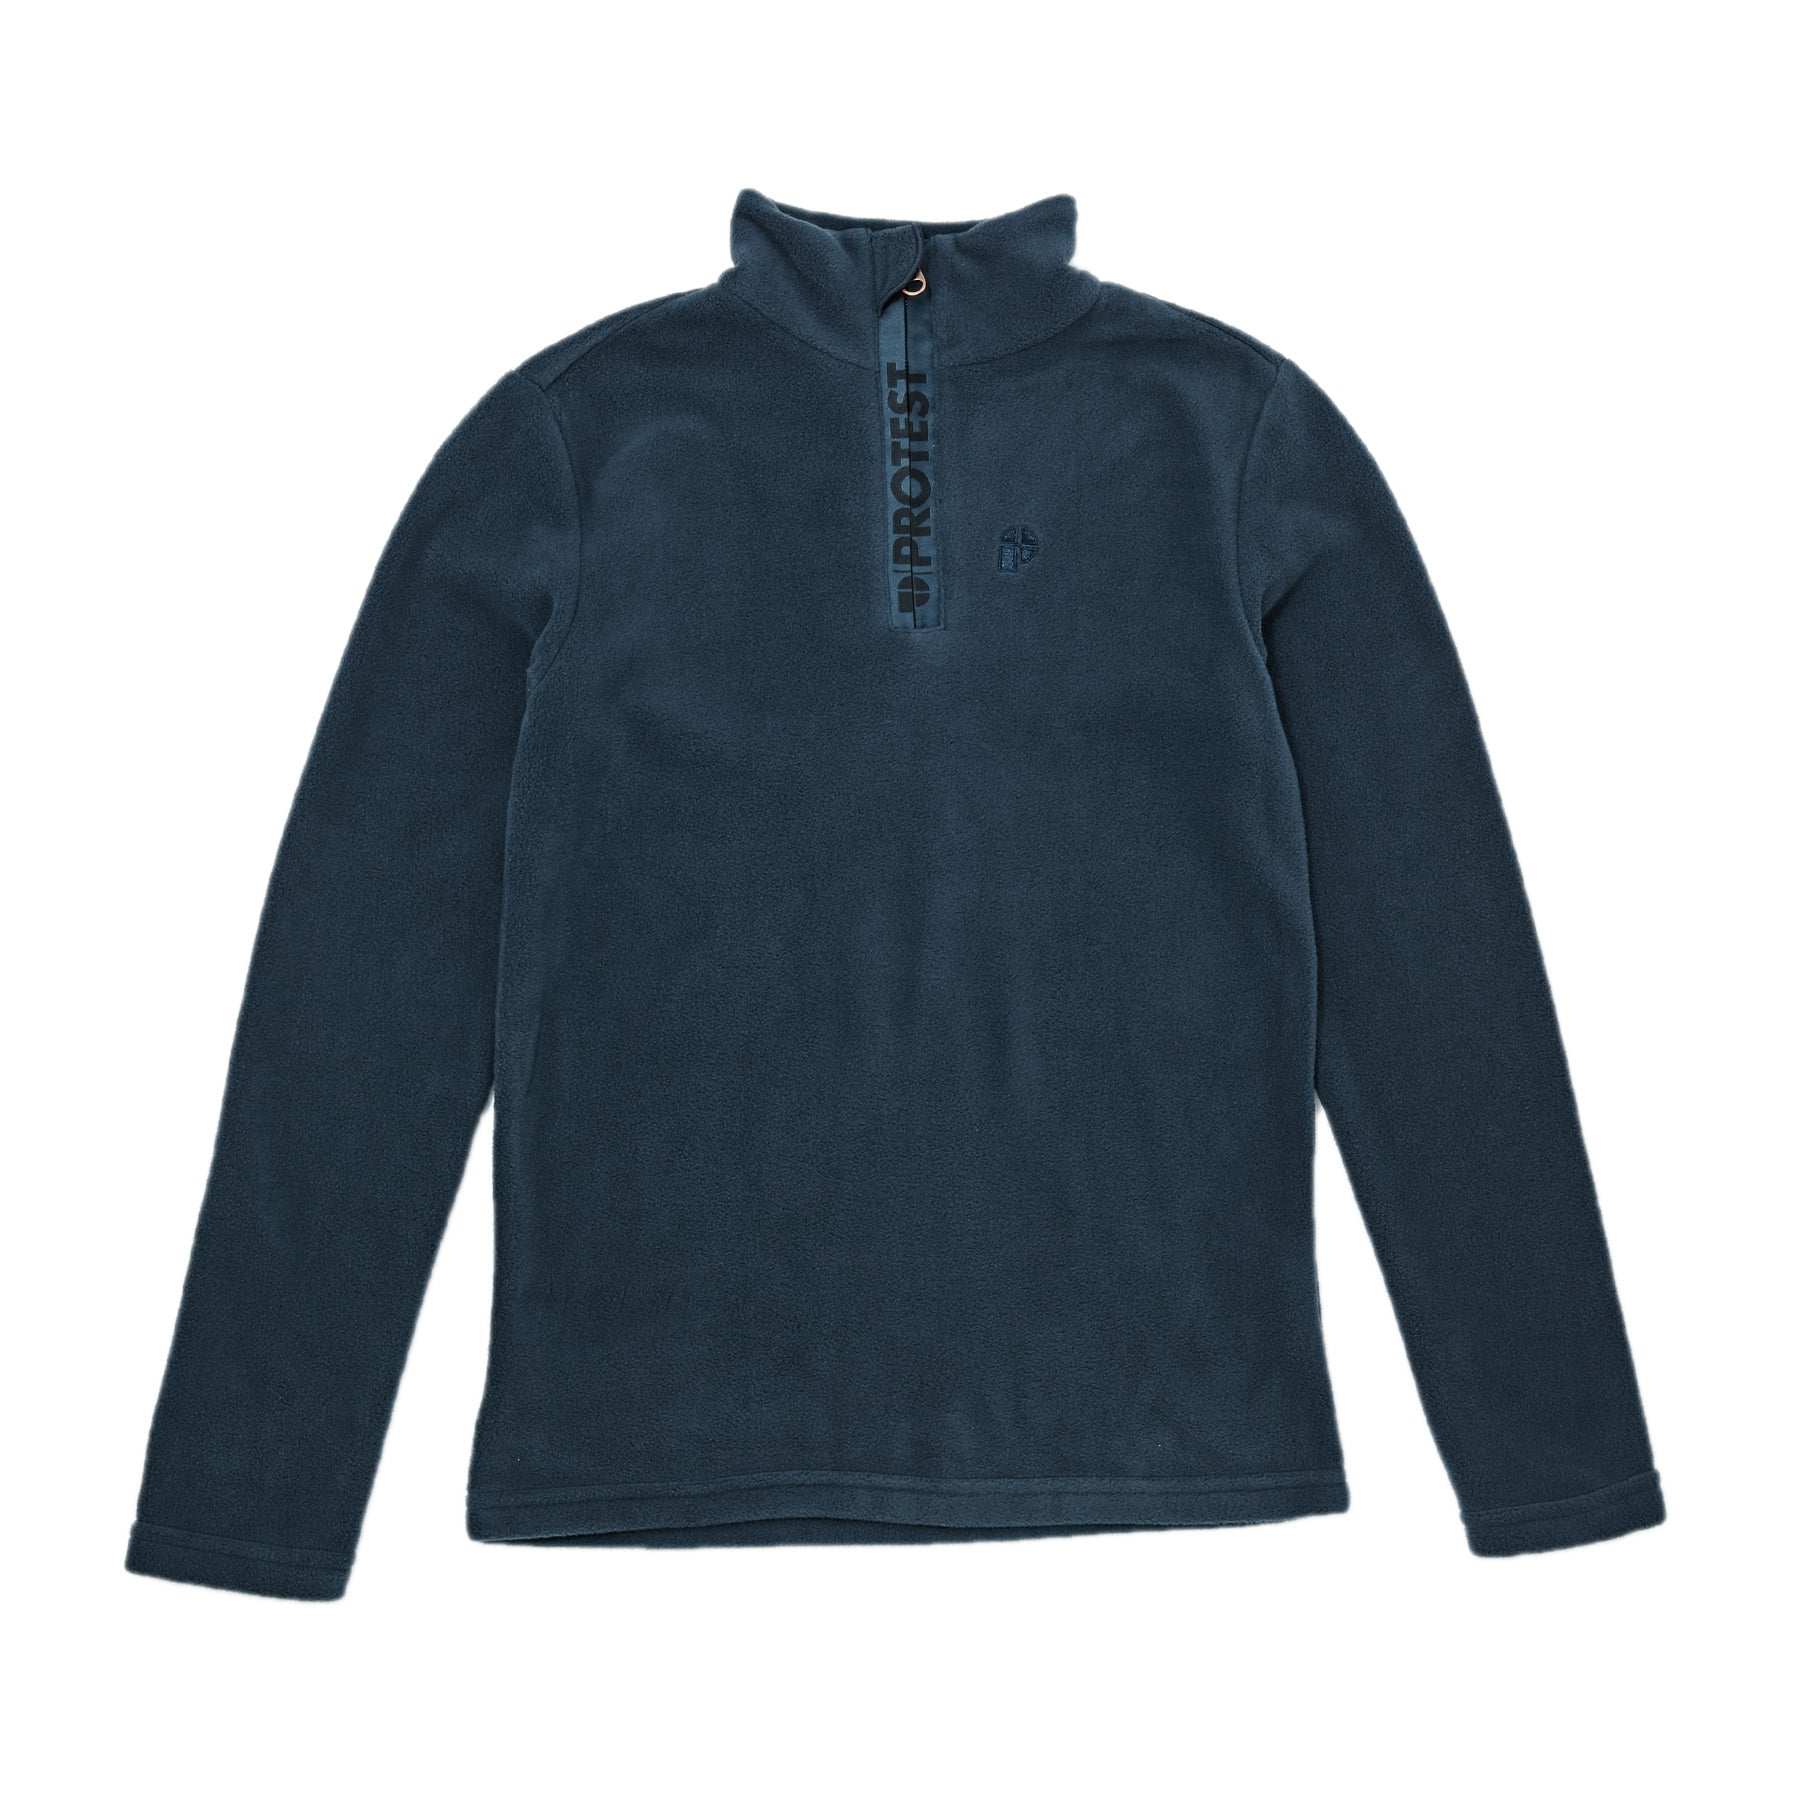 Protest Perfecty JR 1/4 Zip Top Kids Fleece - Navy Blue